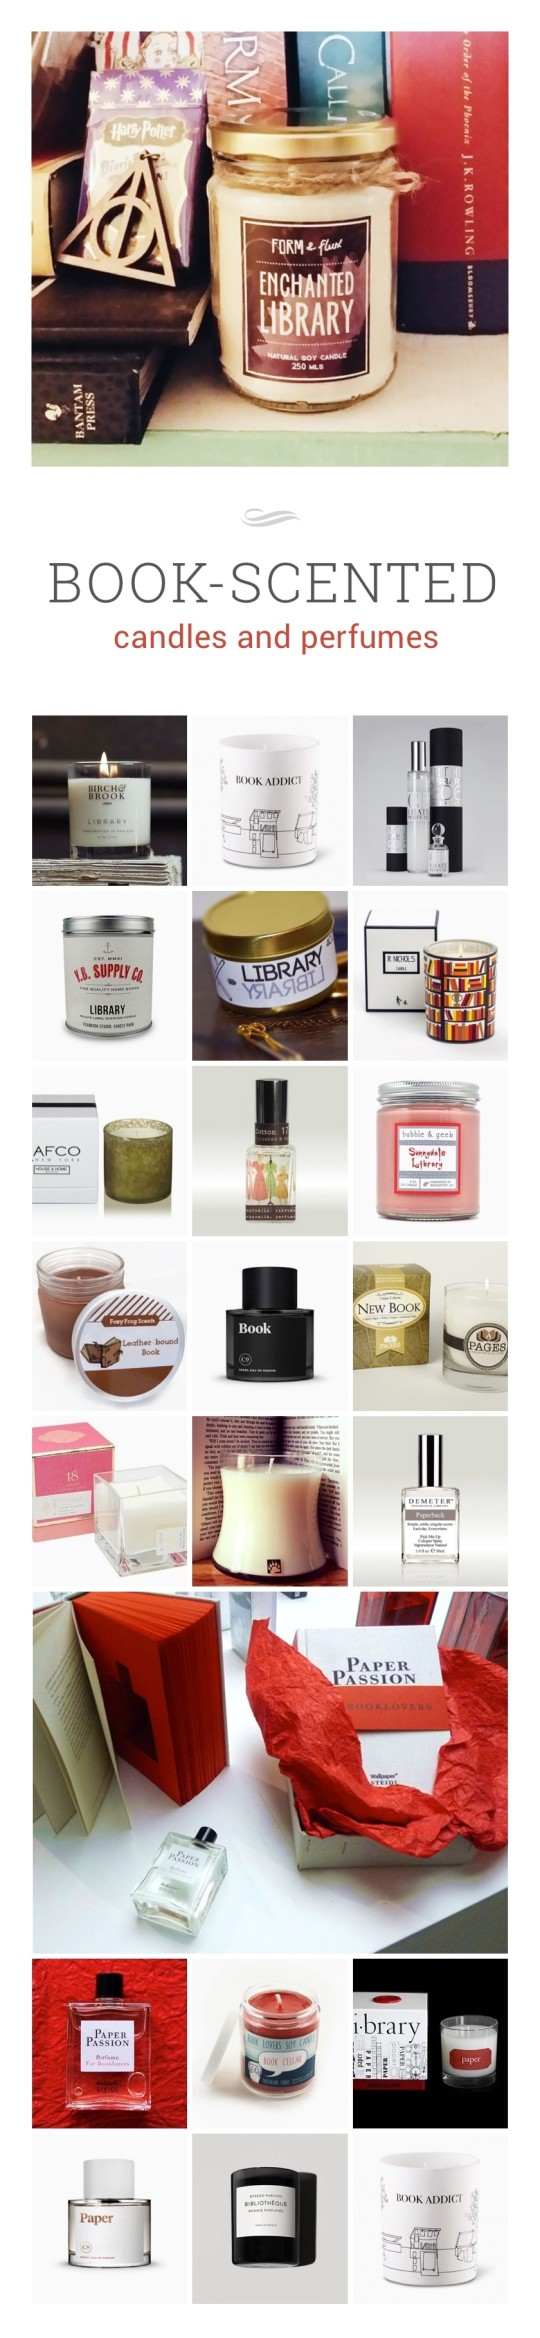 Best book-scented candles and perfumes #infographic